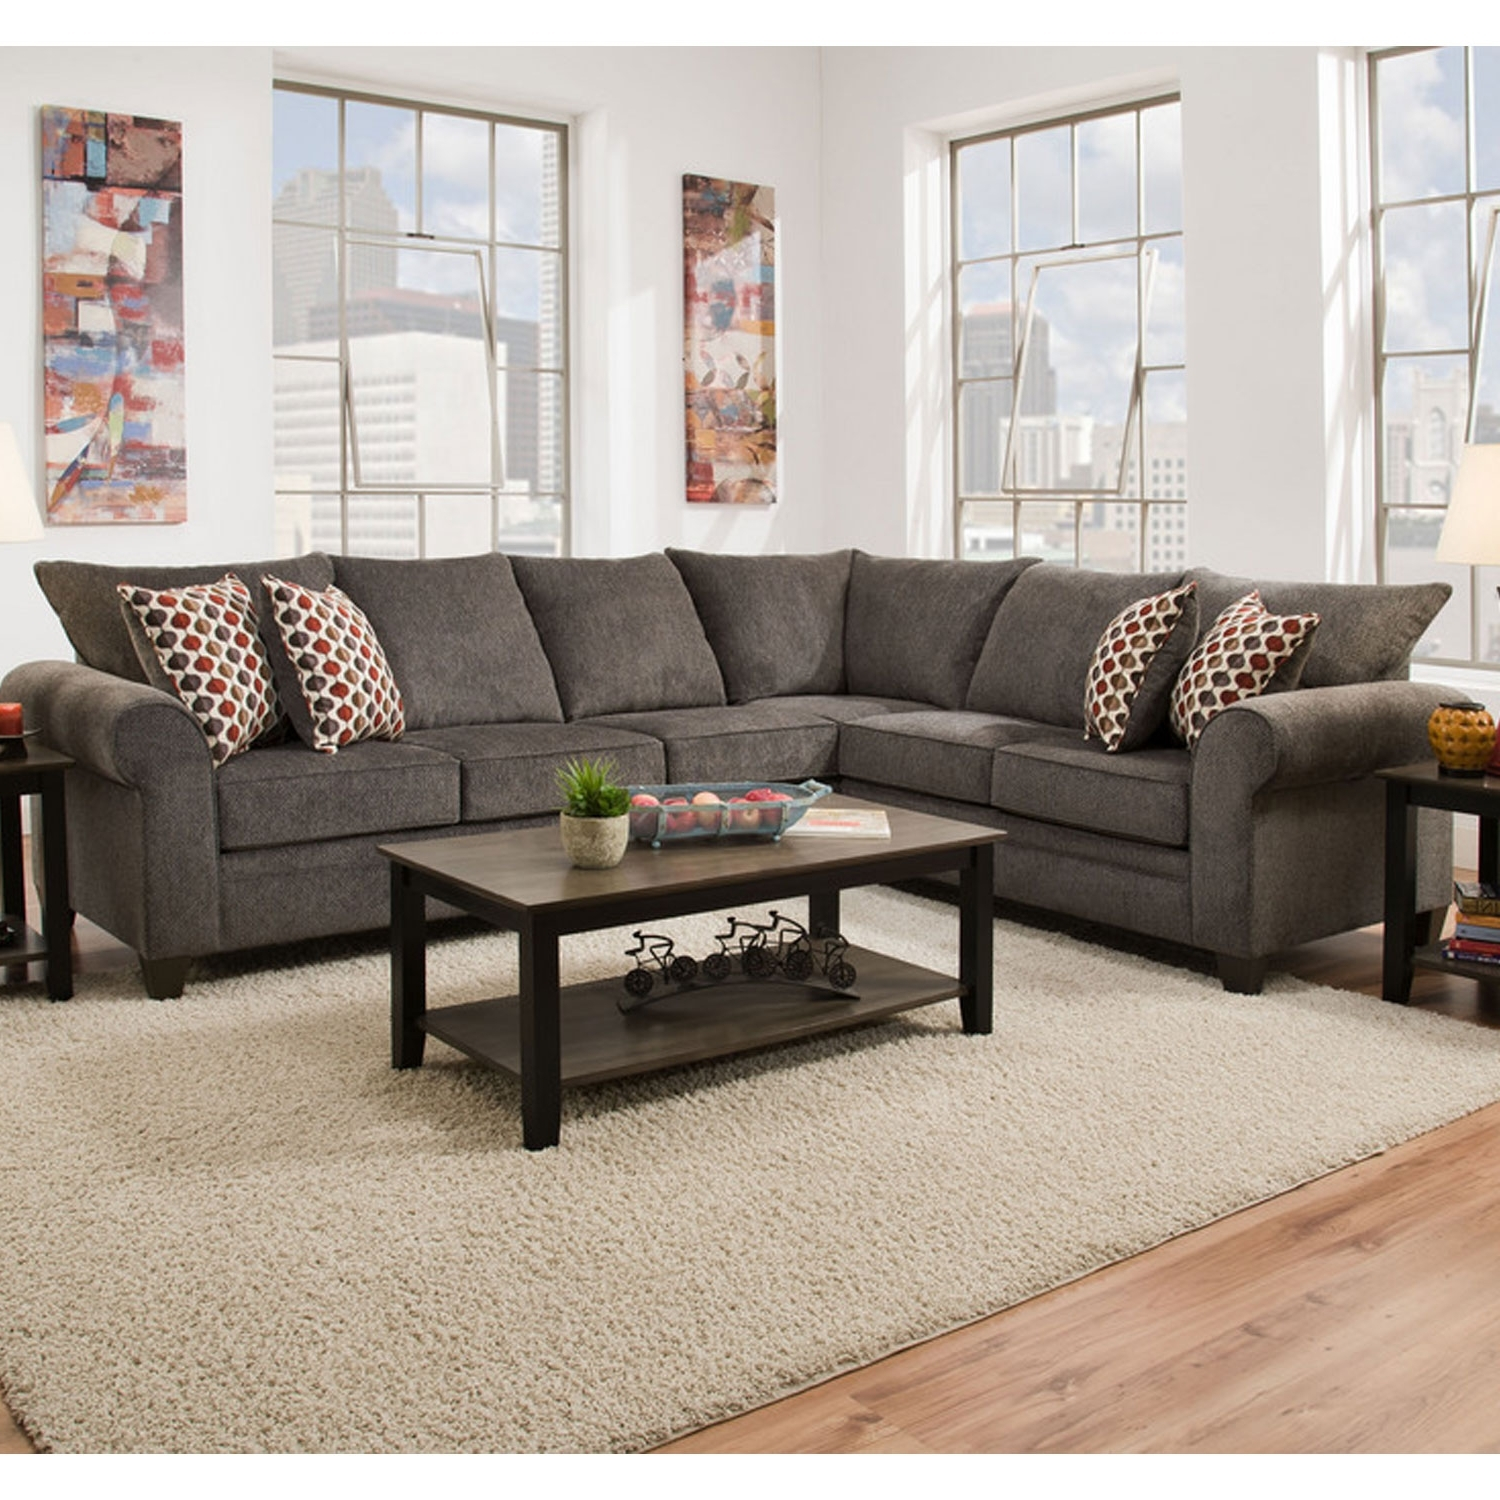 Simmons 1647 Sectional Sofa Albany Pewter (View 5 of 20)